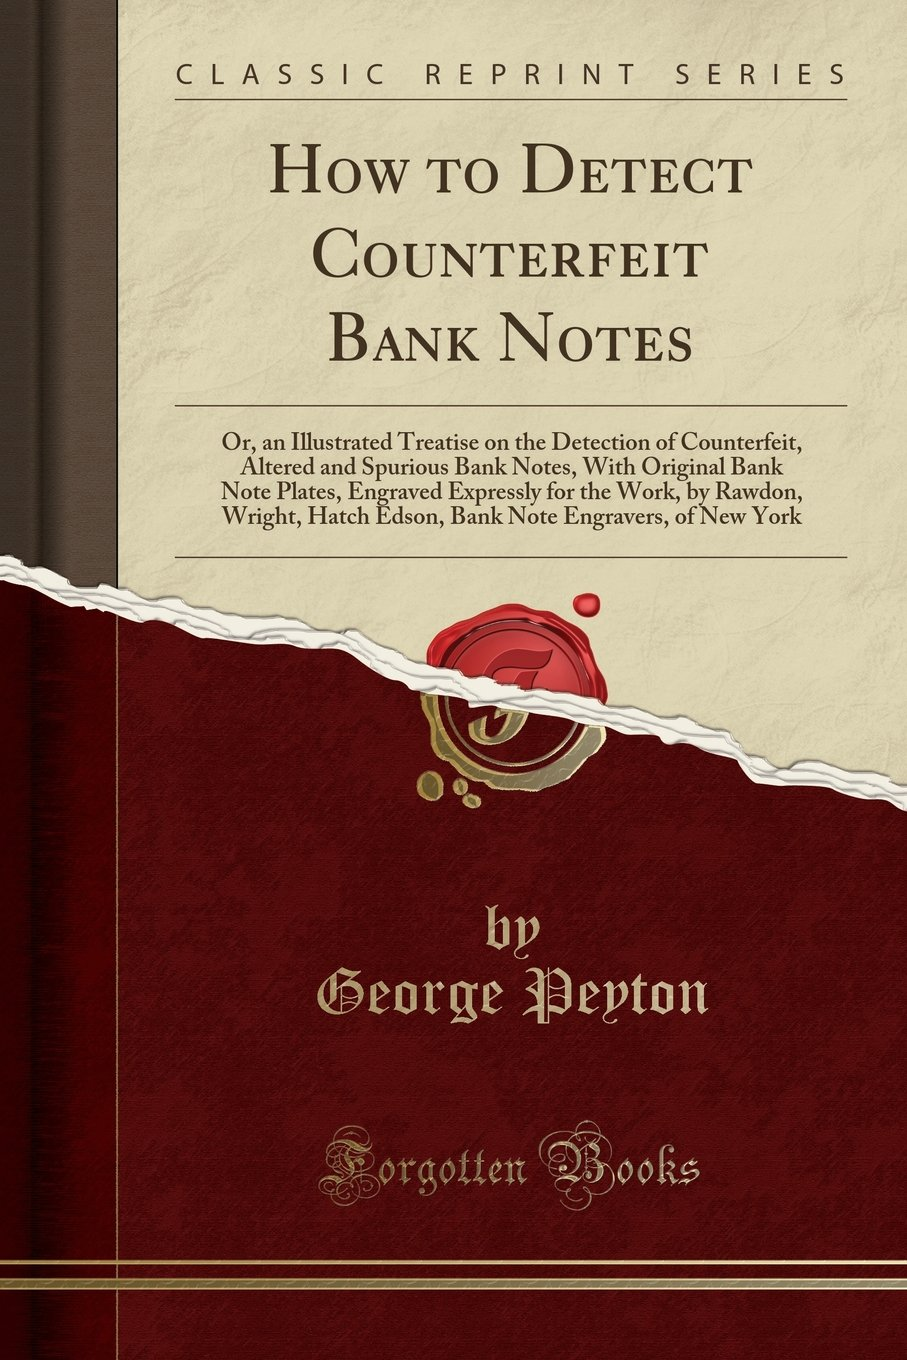 How to Detect Counterfeit Bank Notes: Or, an Illustrated Treatise on the Detection of Counterfeit, Altered and Spurious Bank Notes, With Original Bank ... Hatch Edson, Bank Note Engravers, of Ne pdf